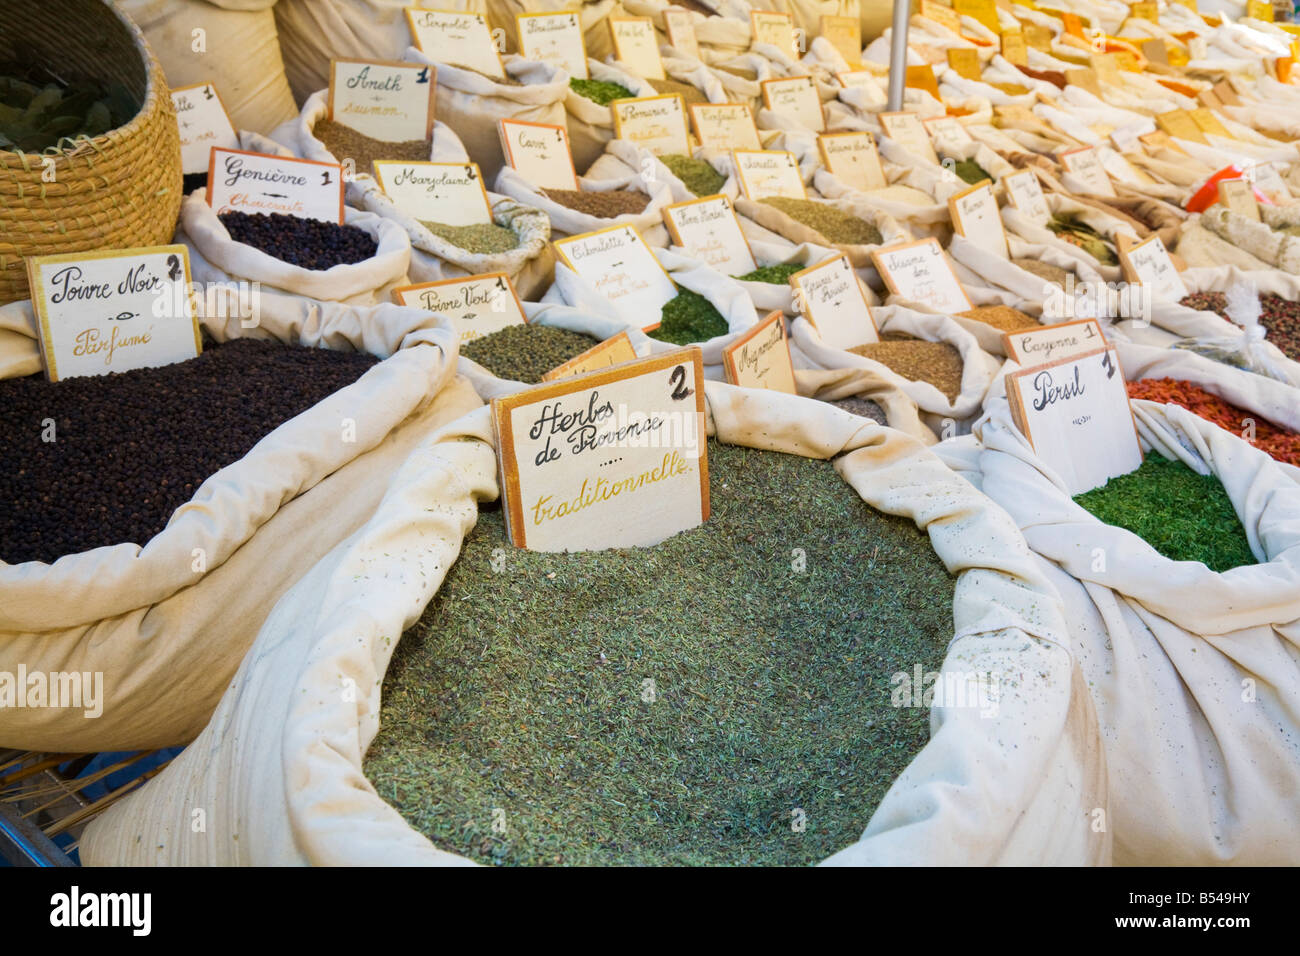 A variety of herbs and spices (provençal herbs in the foreground) is being offered at a farmers market in the - Stock Image